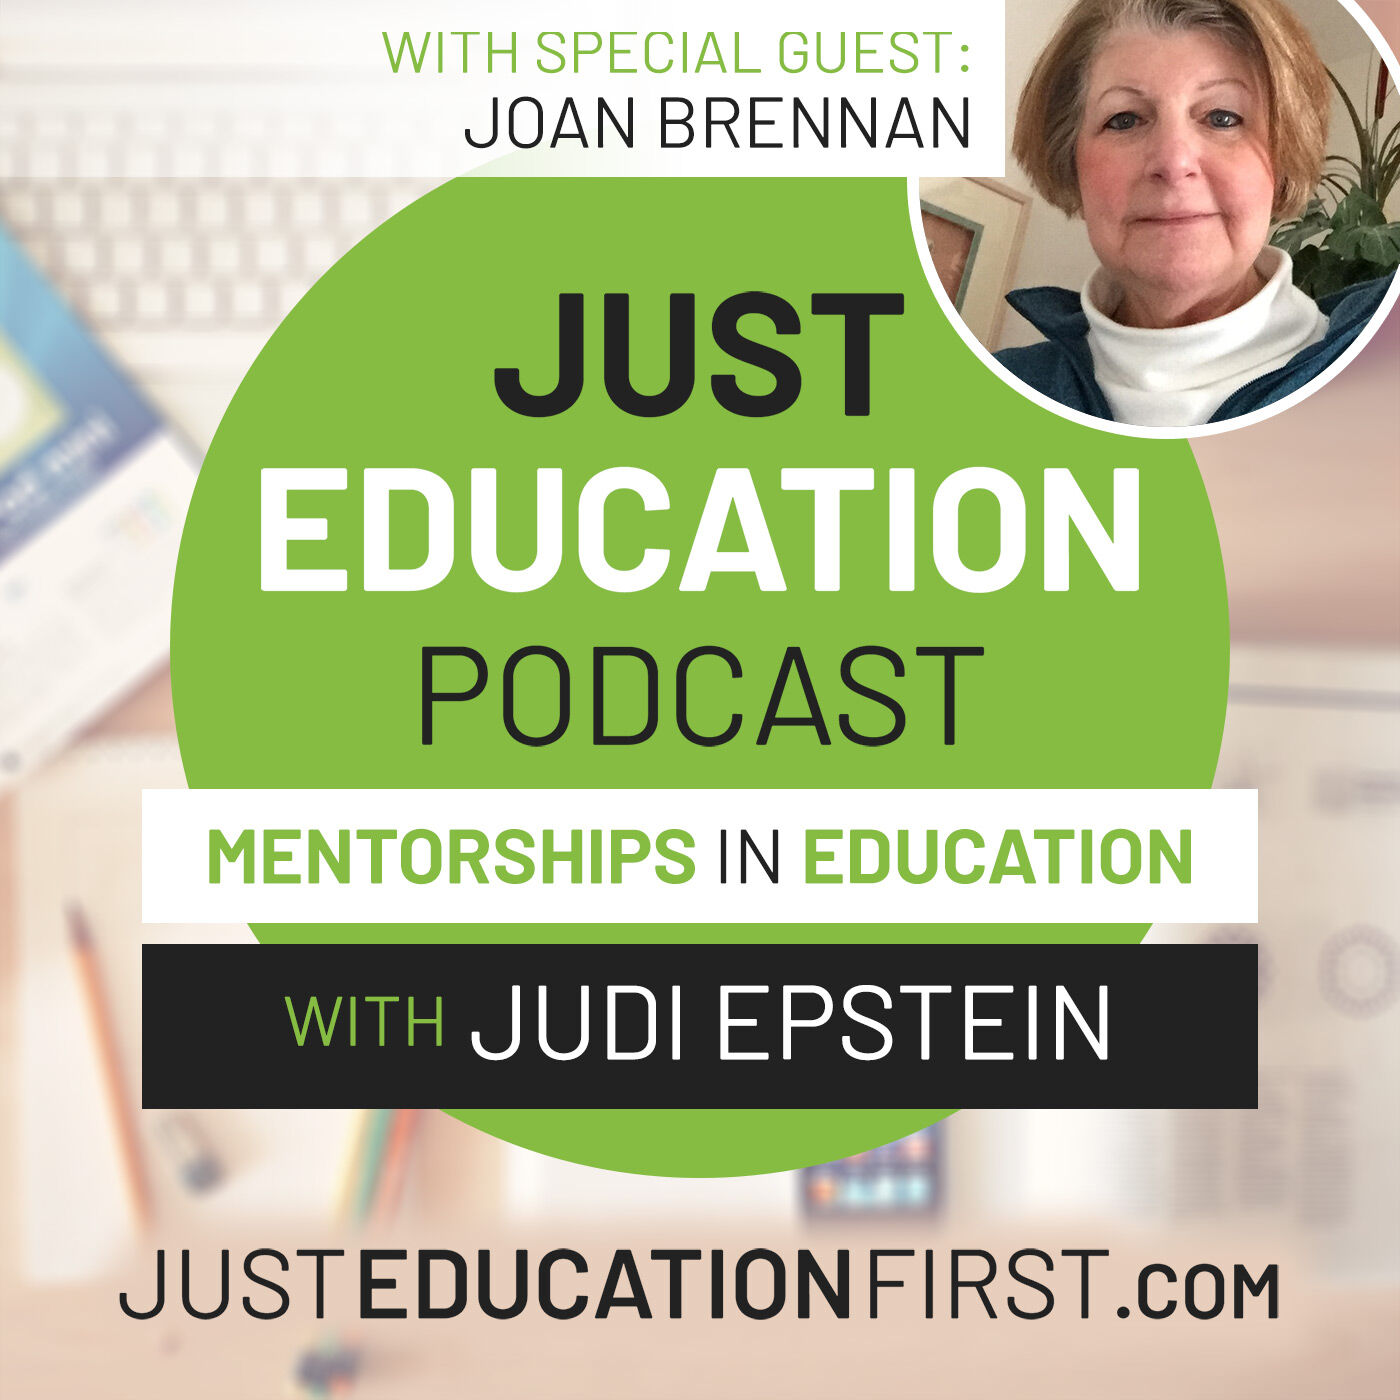 Episode 34 - Joan Brennan | Reading Tools That Train Your Brain